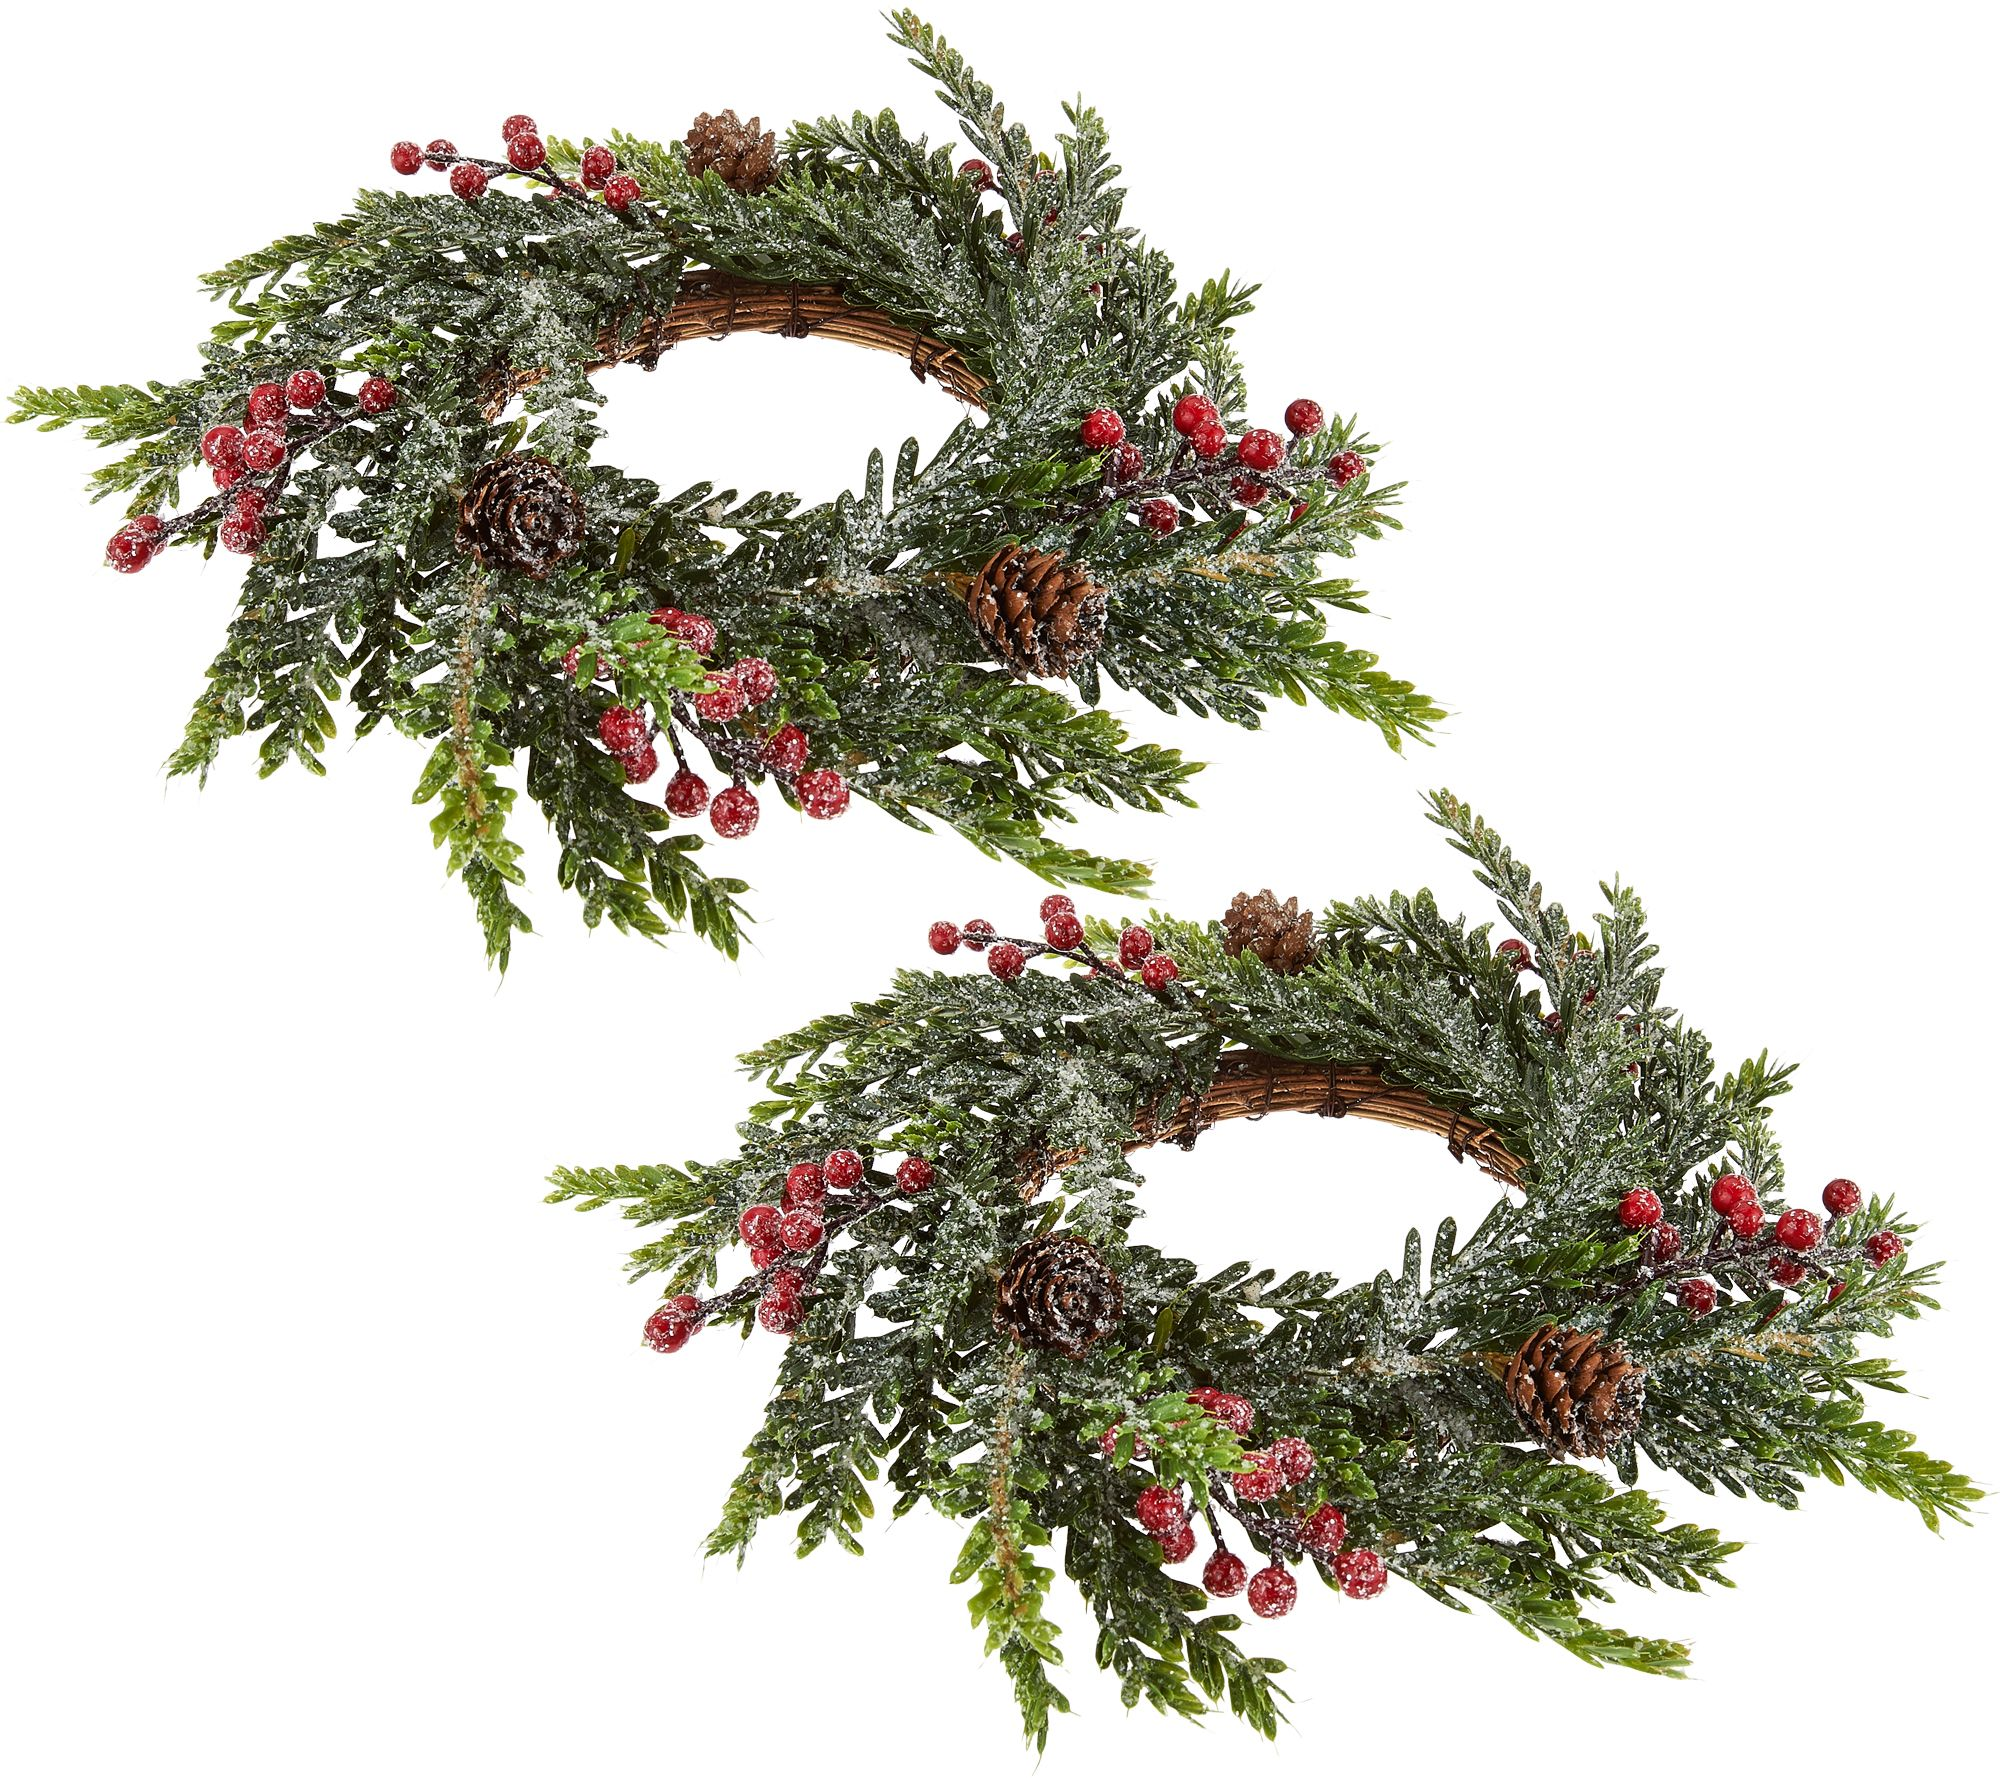 set of 2 iced hemlock candle rings with berries by valerie page 1 qvccom - Decorative Christmas Candle Rings